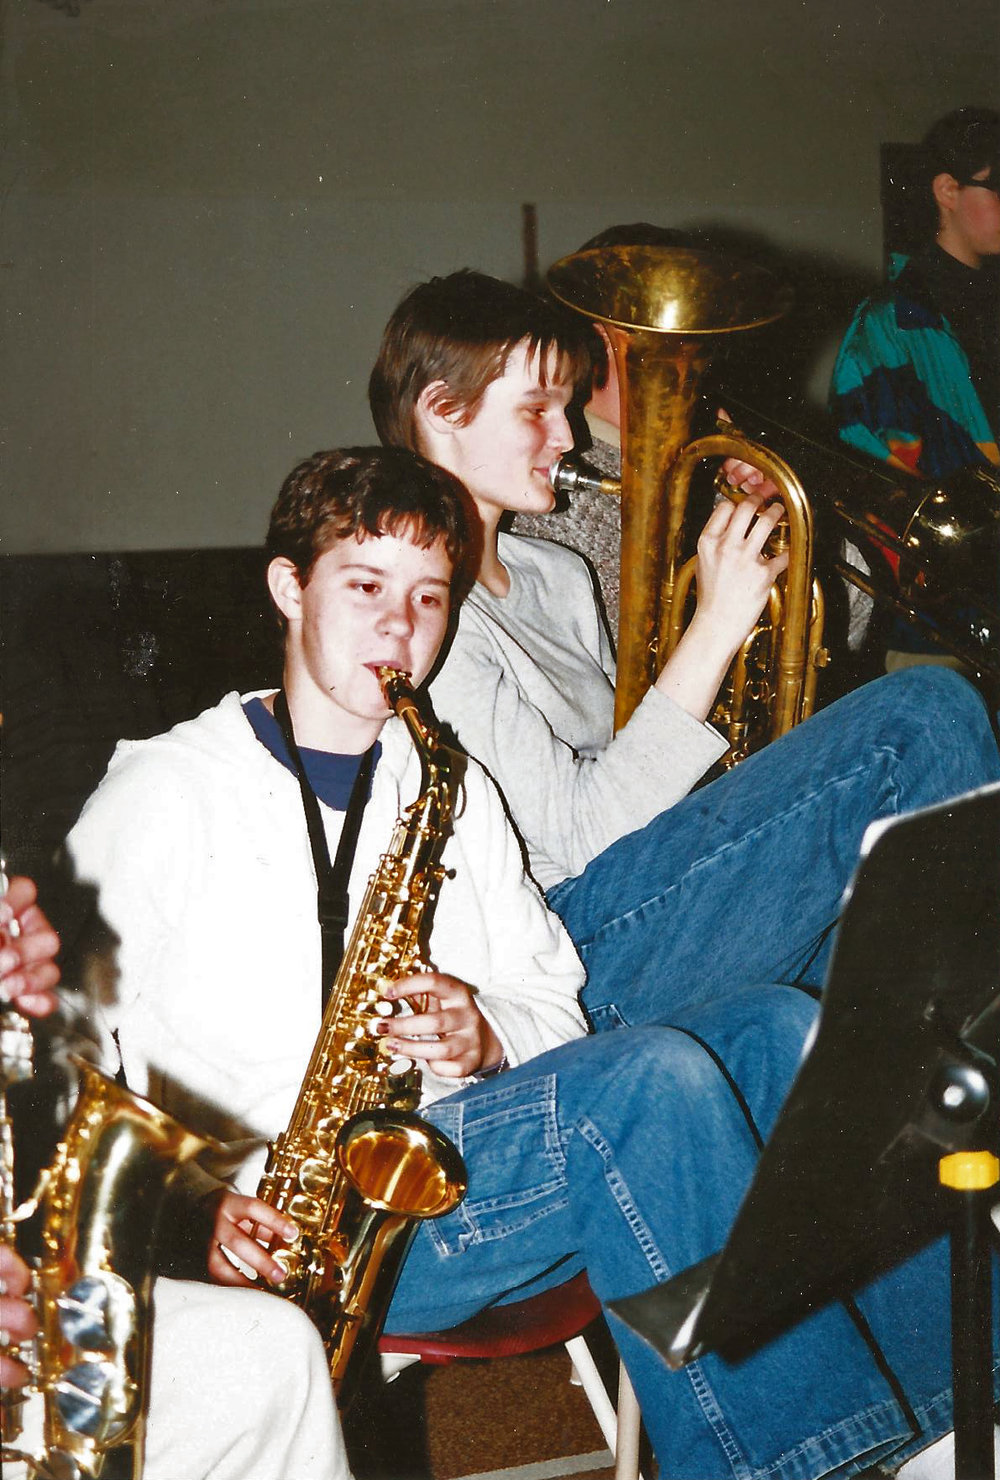 This would have been grade 7 or 8. I played saxophone once upon a time.